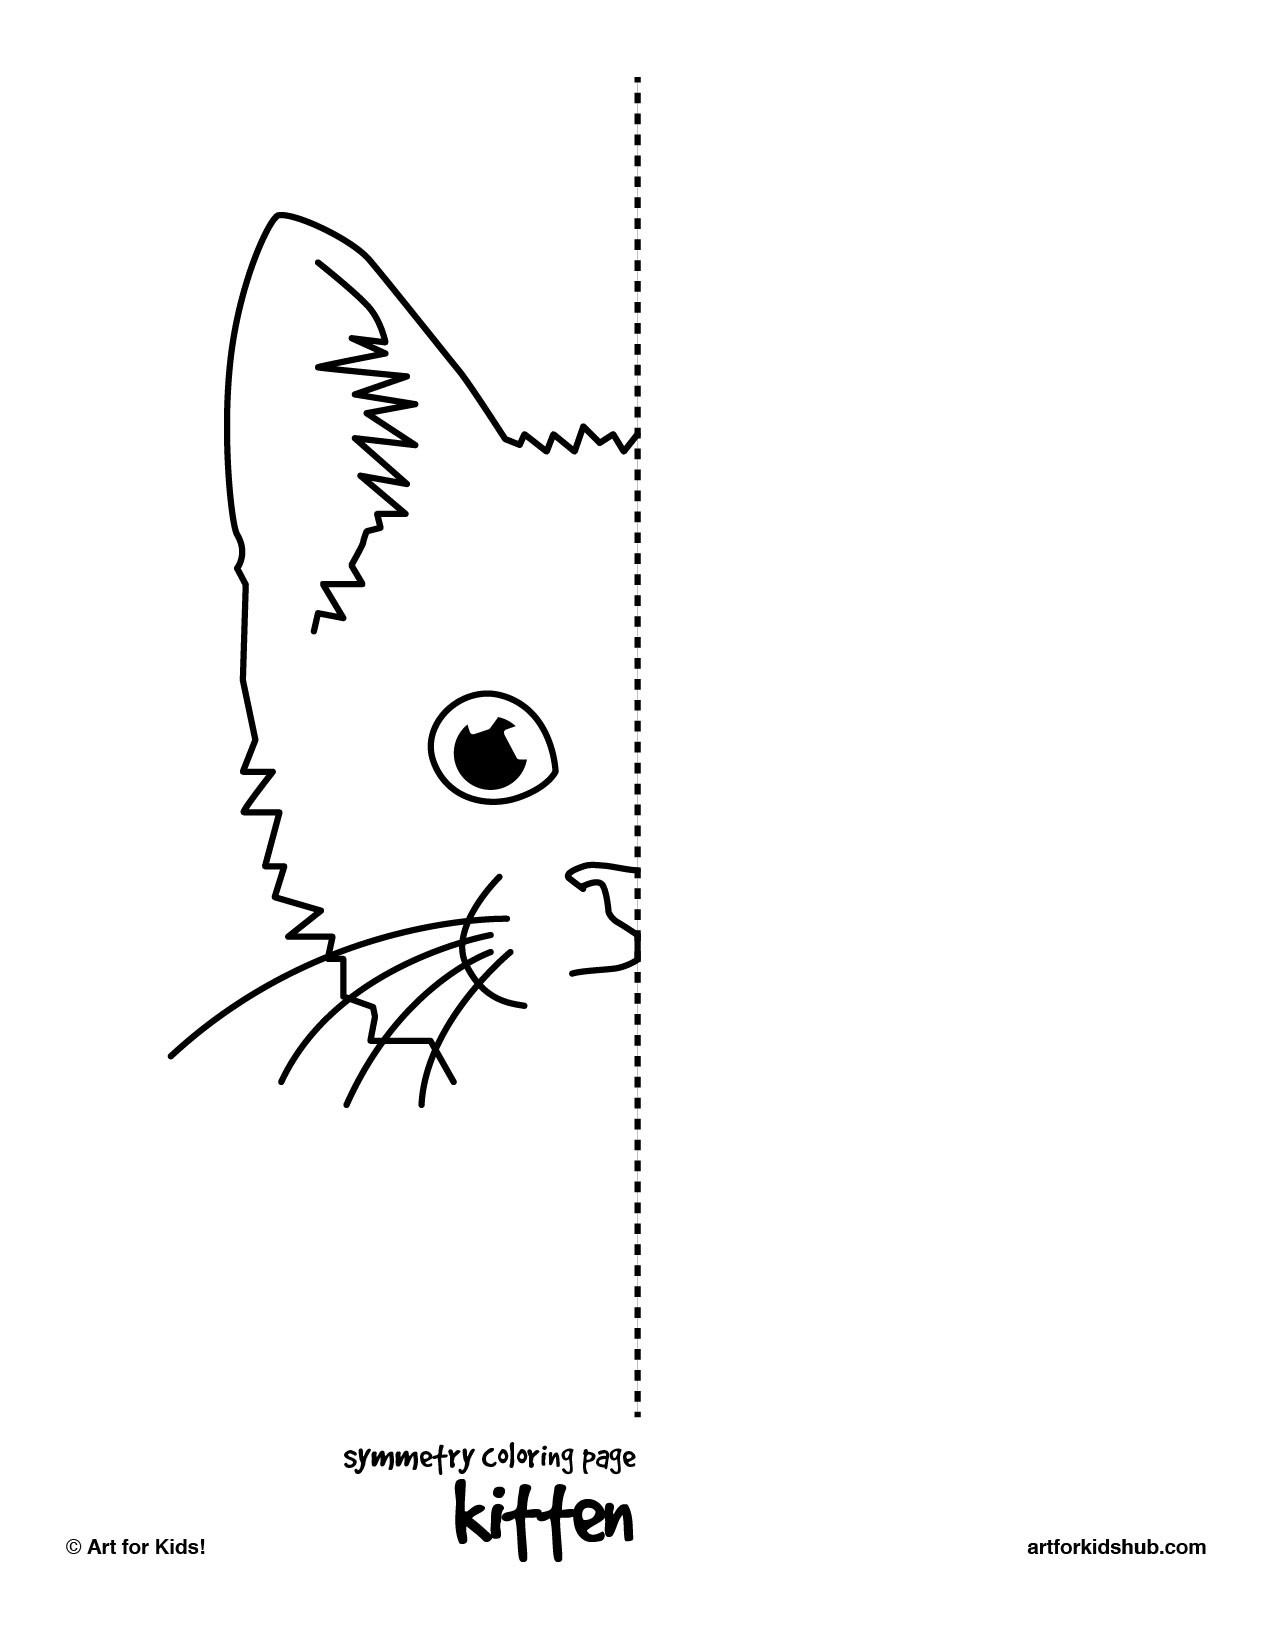 Symmetry Kitten Preschool And Homeschool